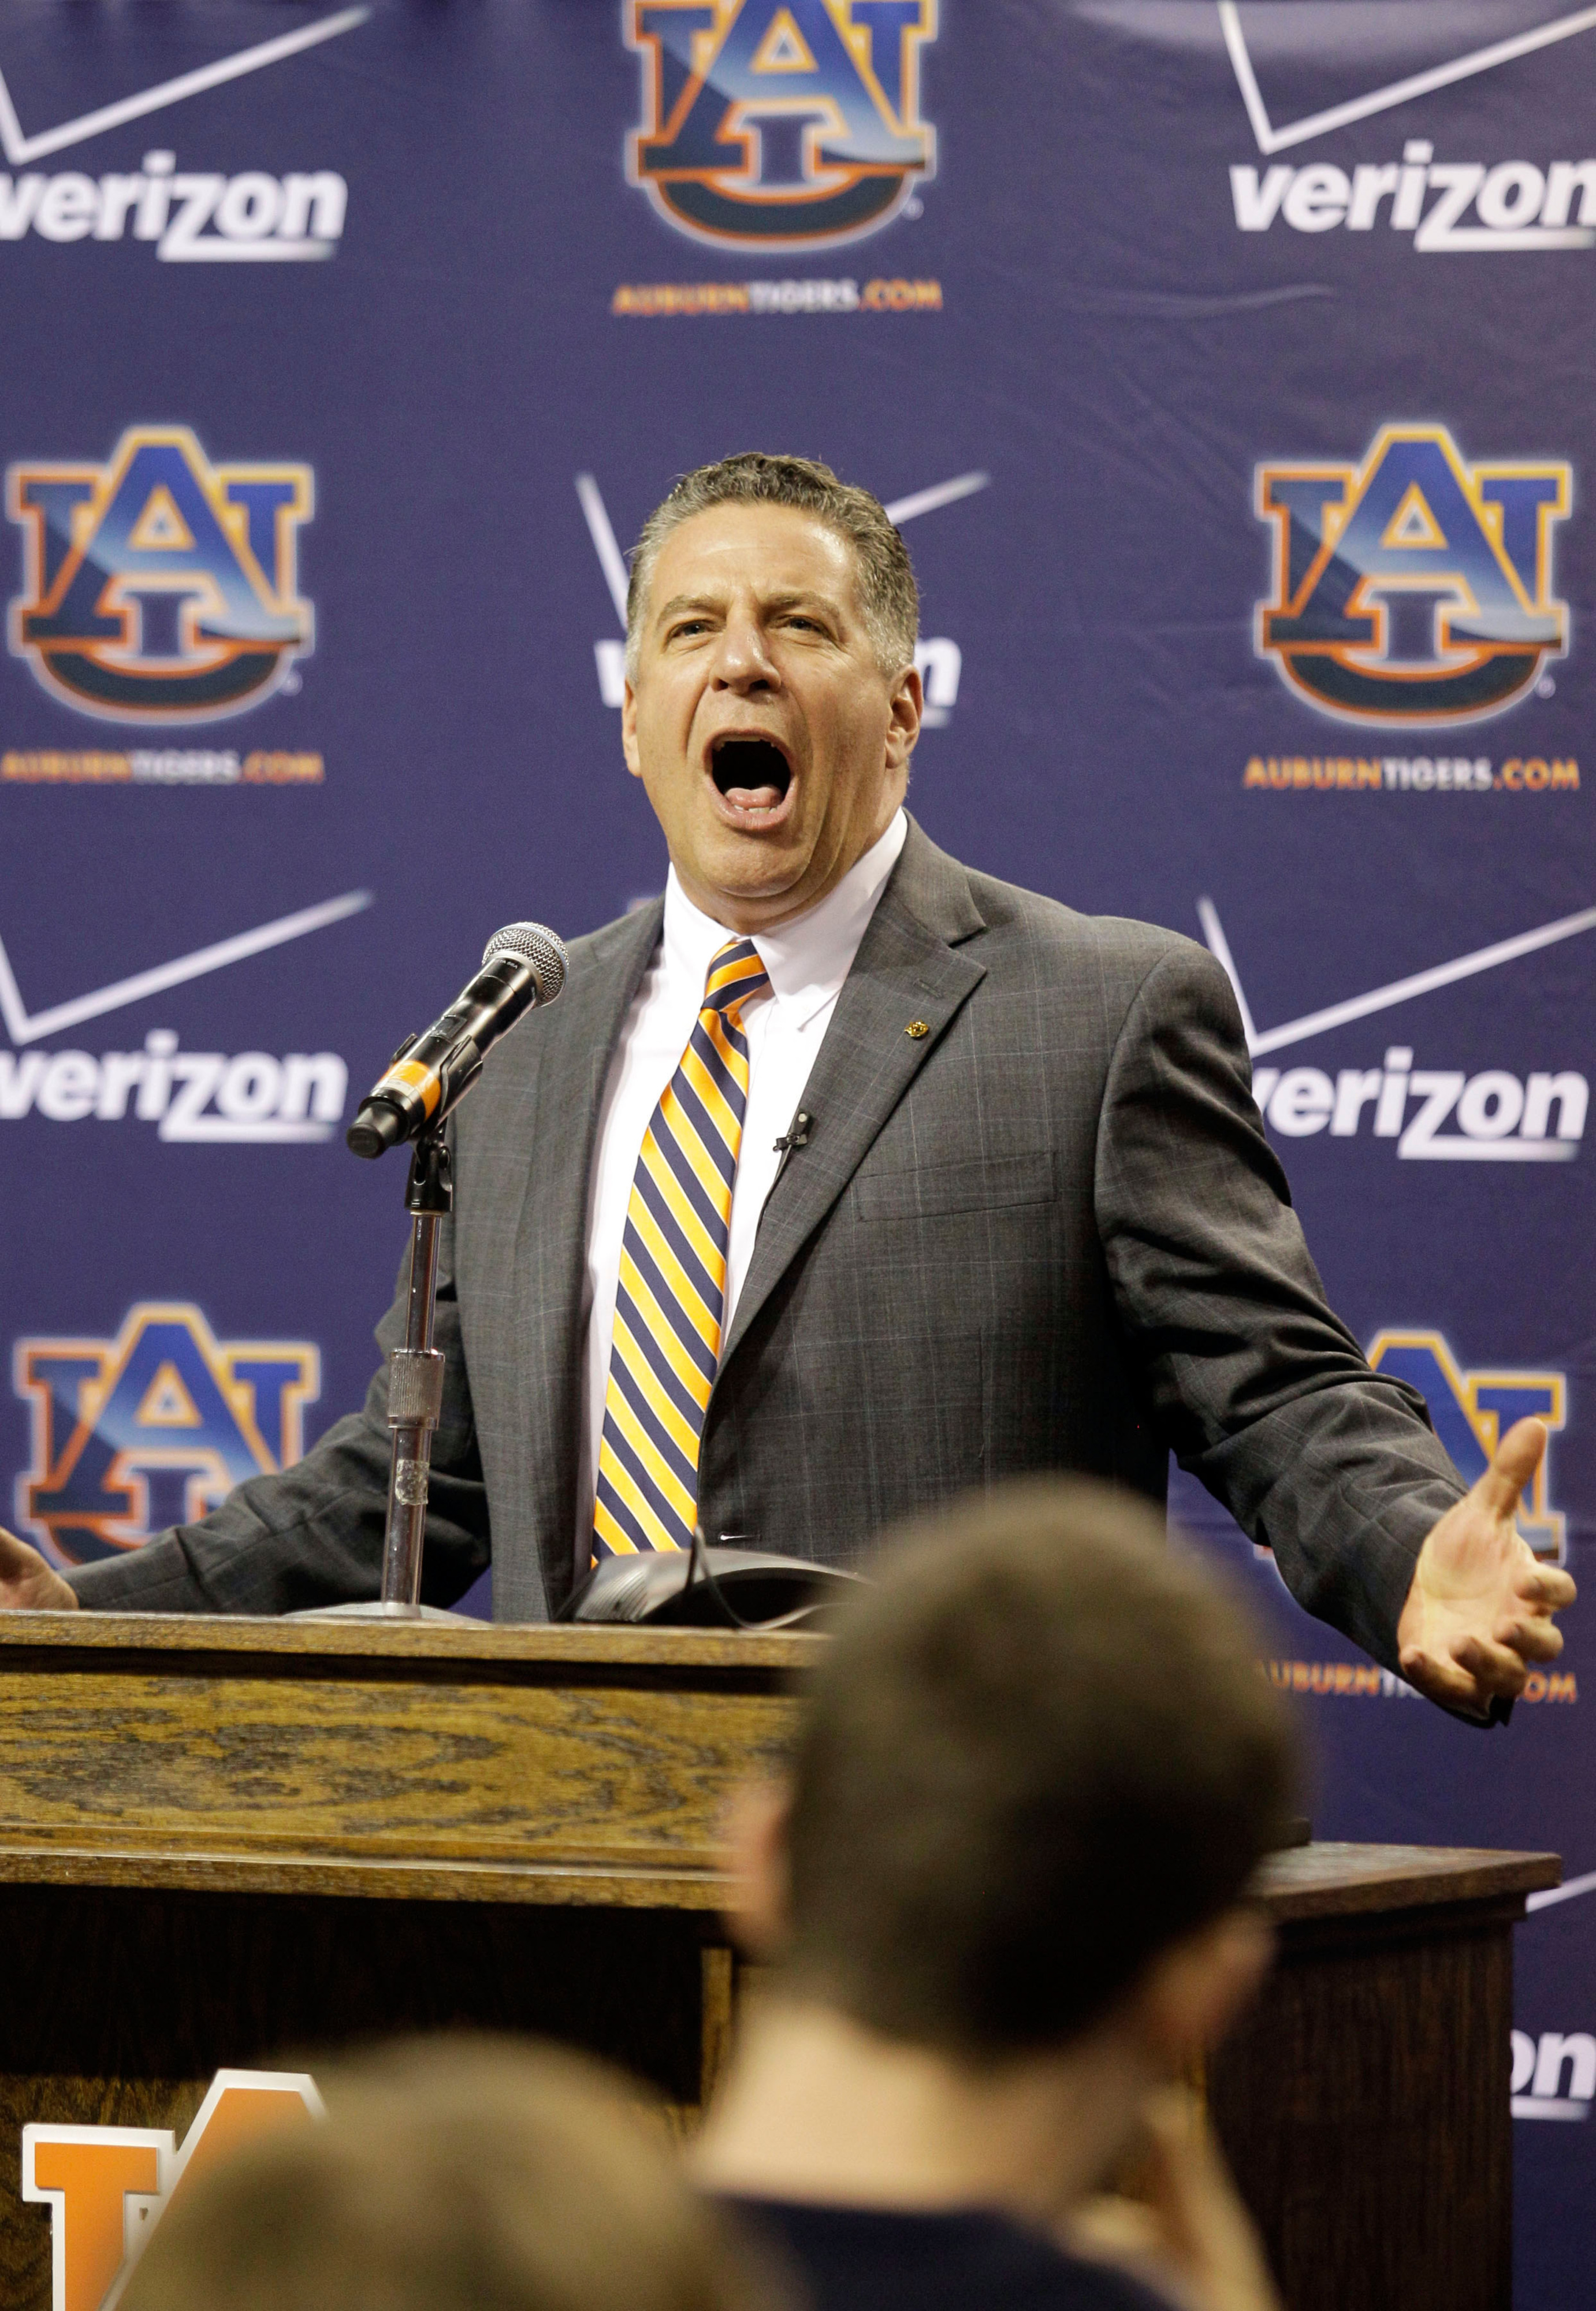 Fun fact: Bruce Pearl's natural speaking voice is a yell.